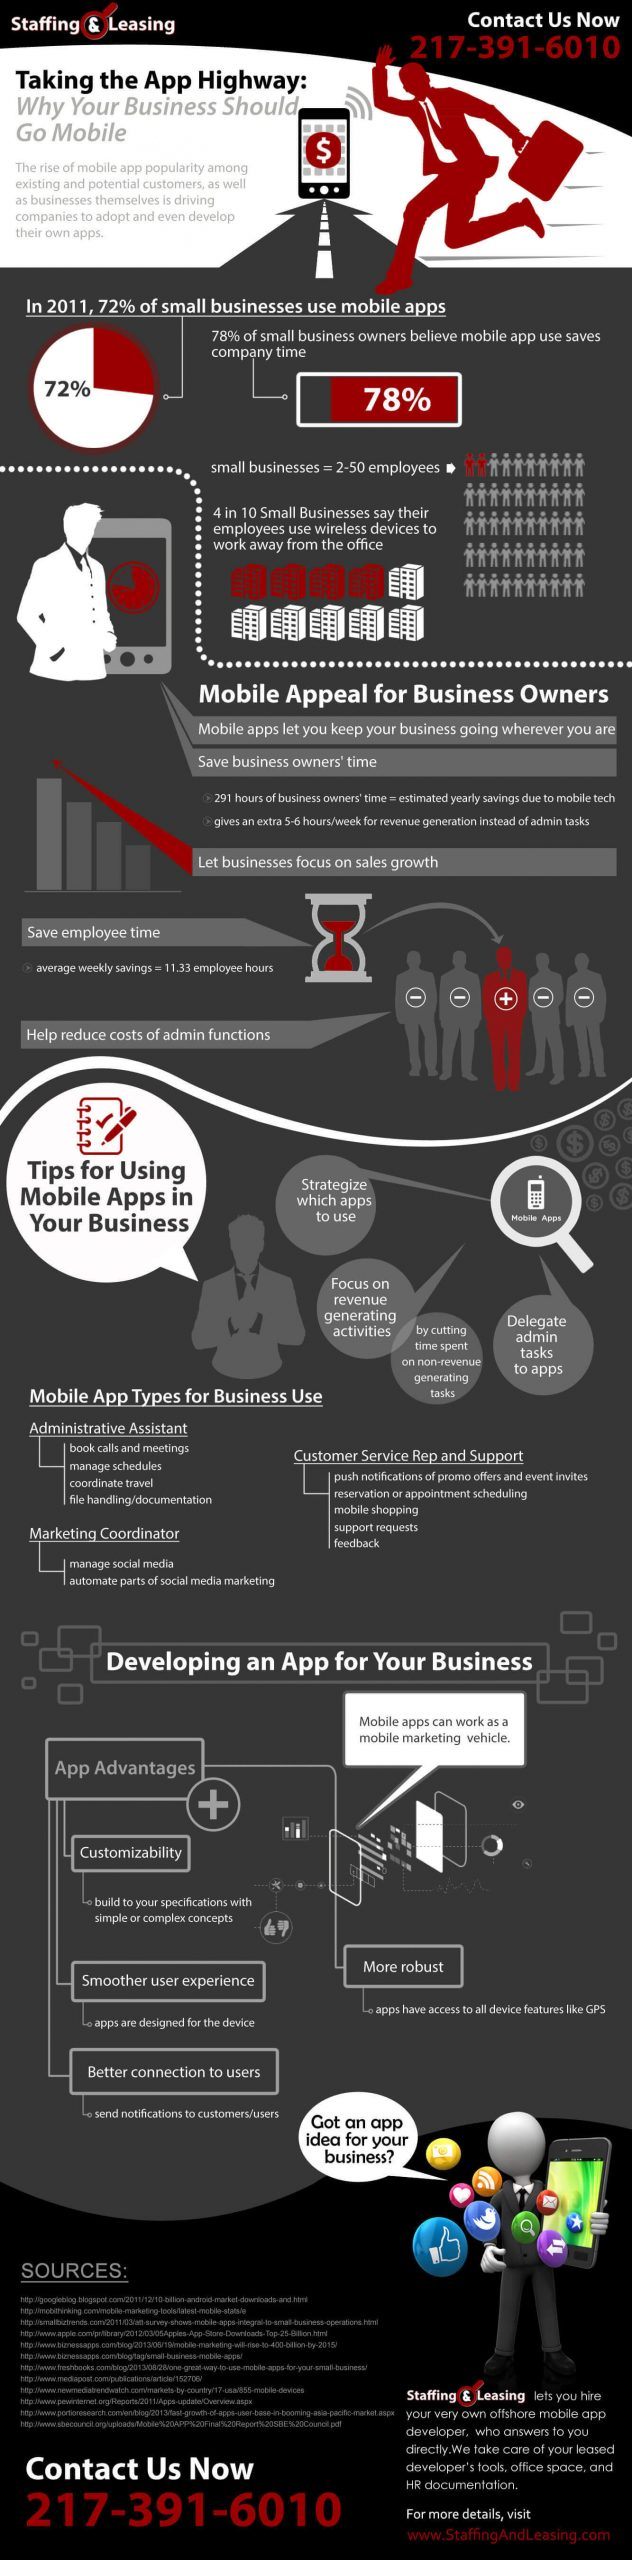 Taking the App Highway - Why Your Business Should Go Mobile